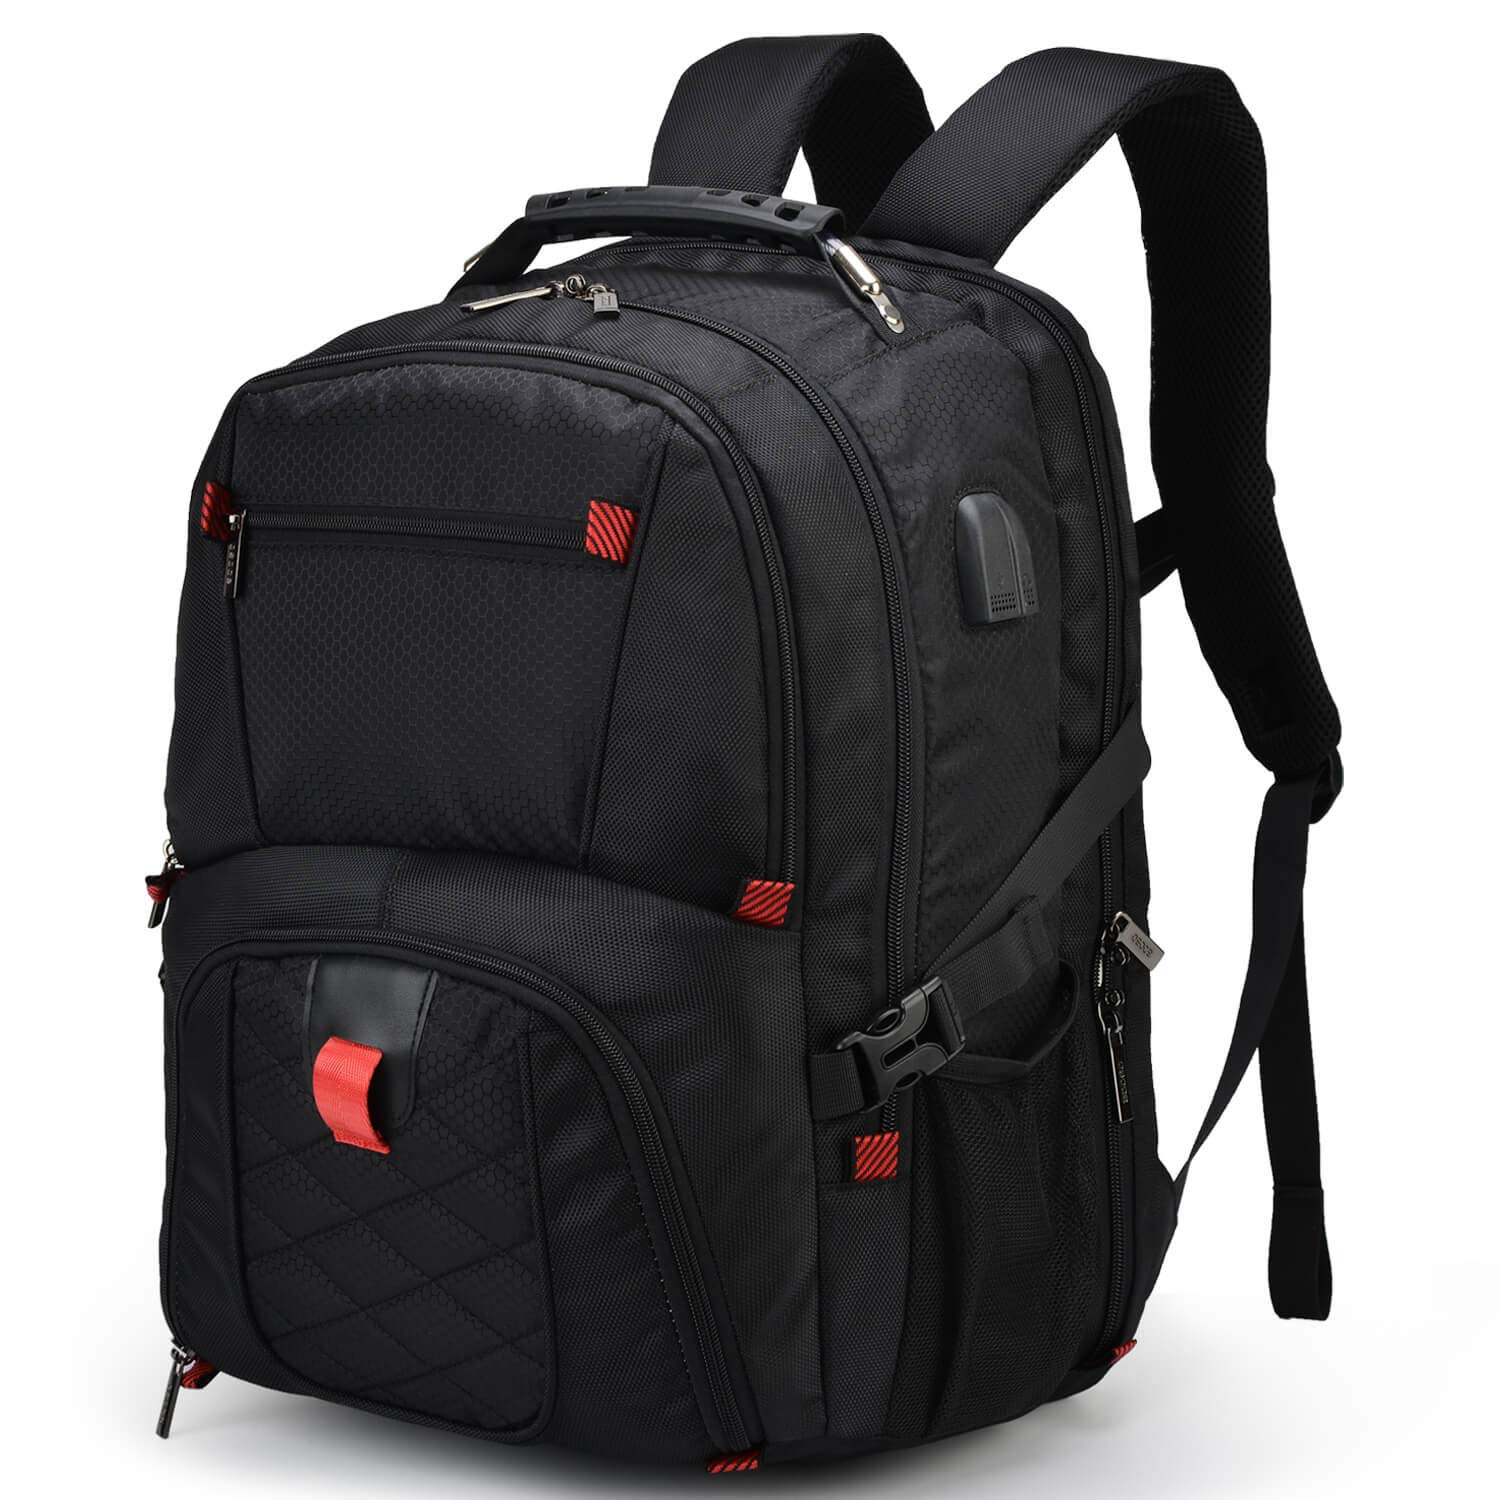 Extra Large Backpack,TSA Travel Back pack Bag With USB Charging For 17 In Laptop